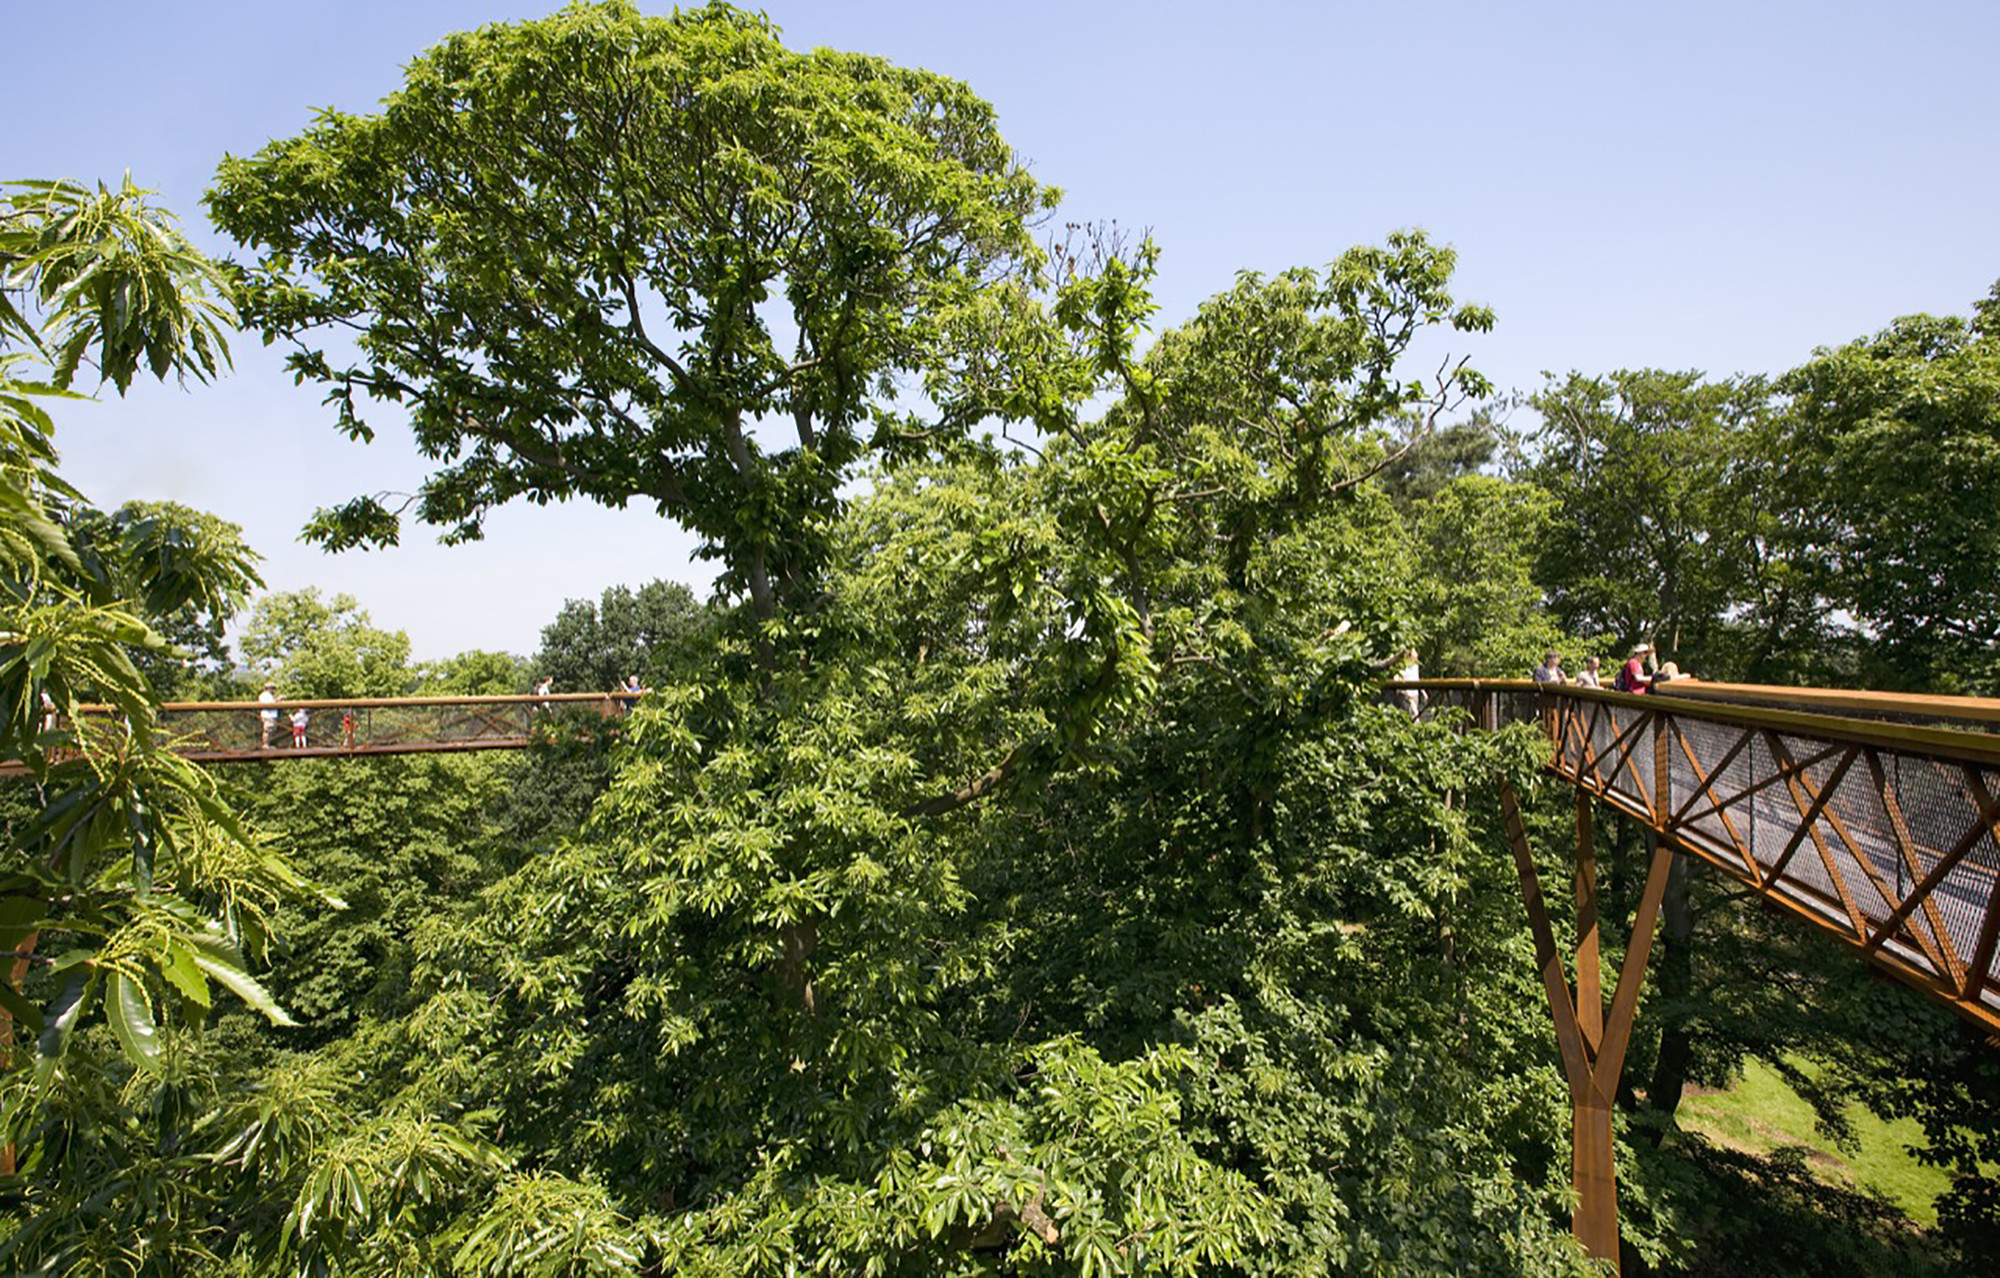 Gallery of kew tree top walkway rhizotron marks for Garden trees london